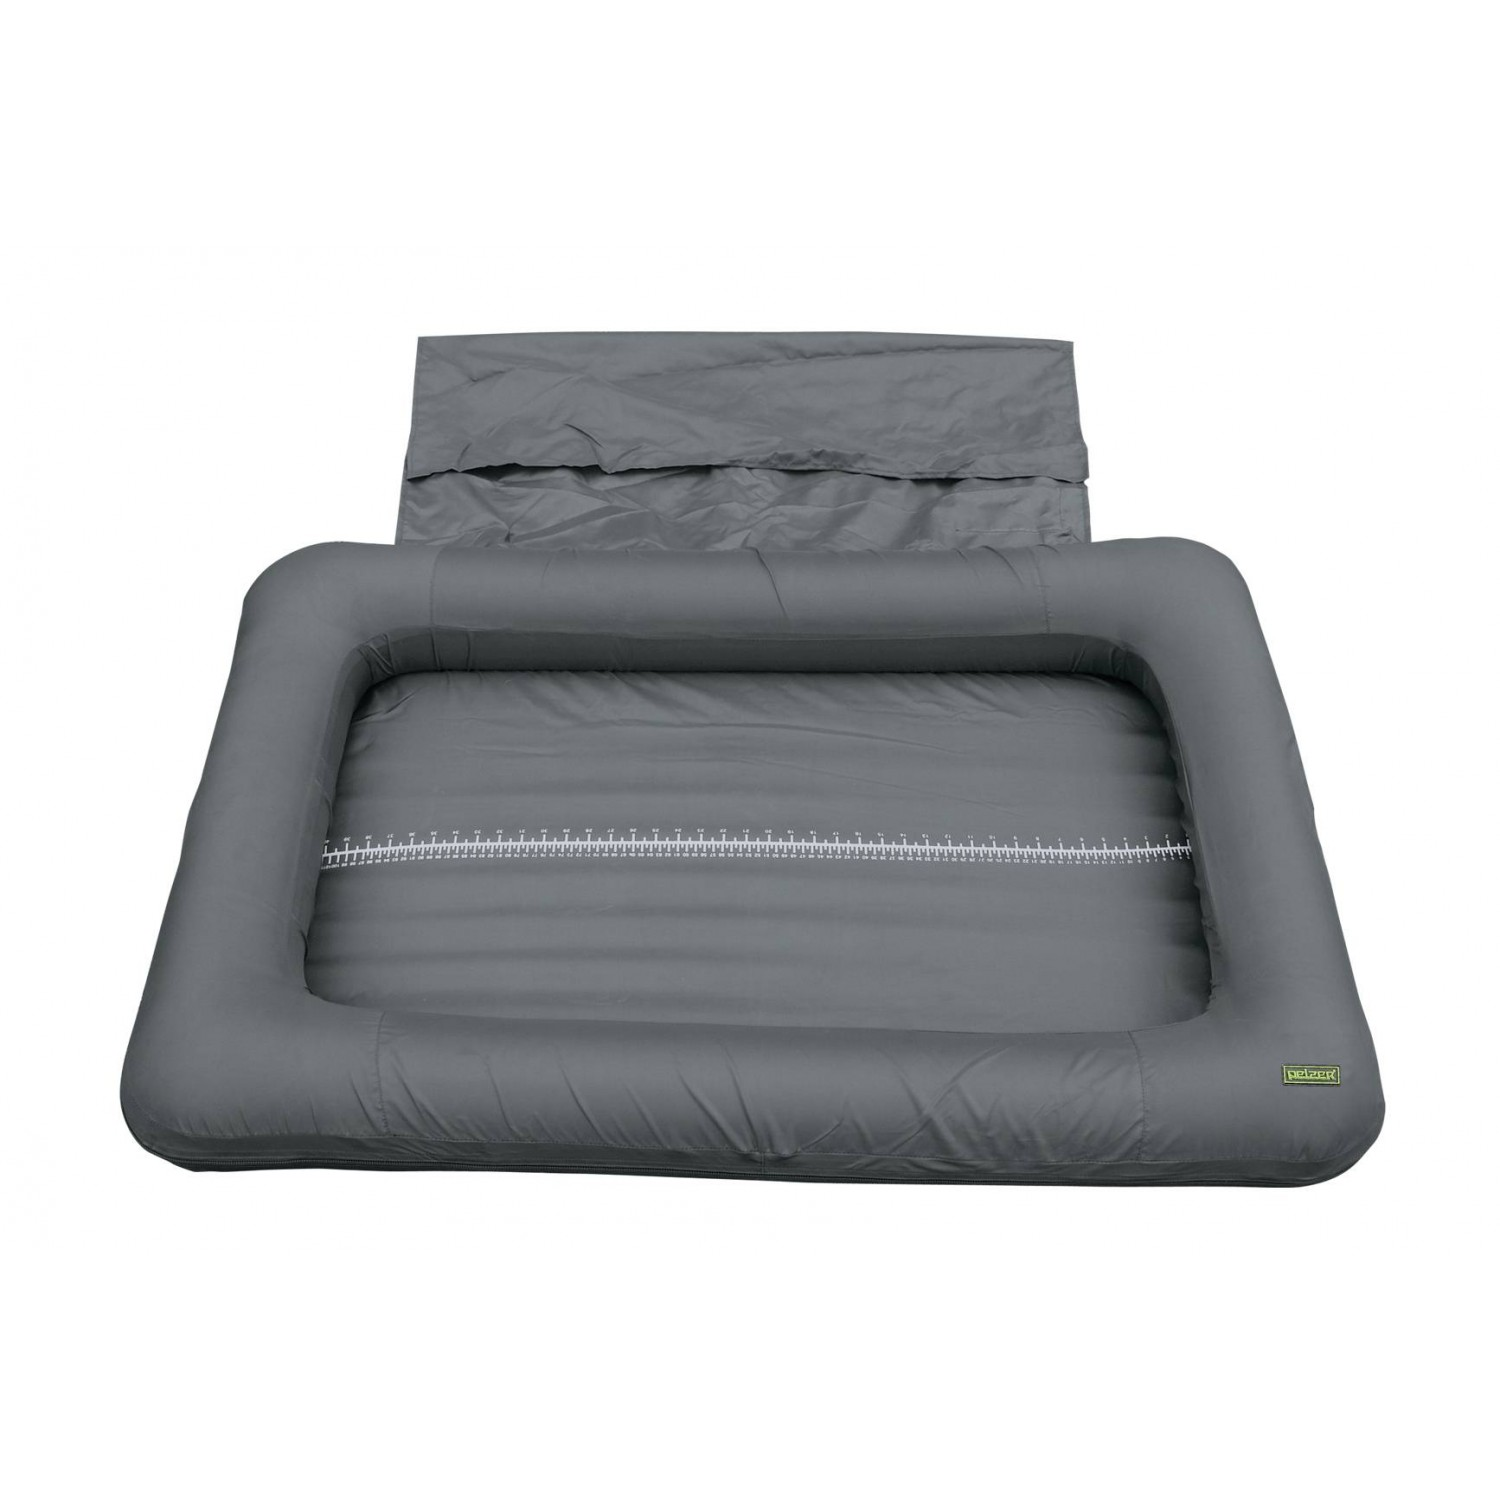 Pelzer Executive Blow Mat Podložka